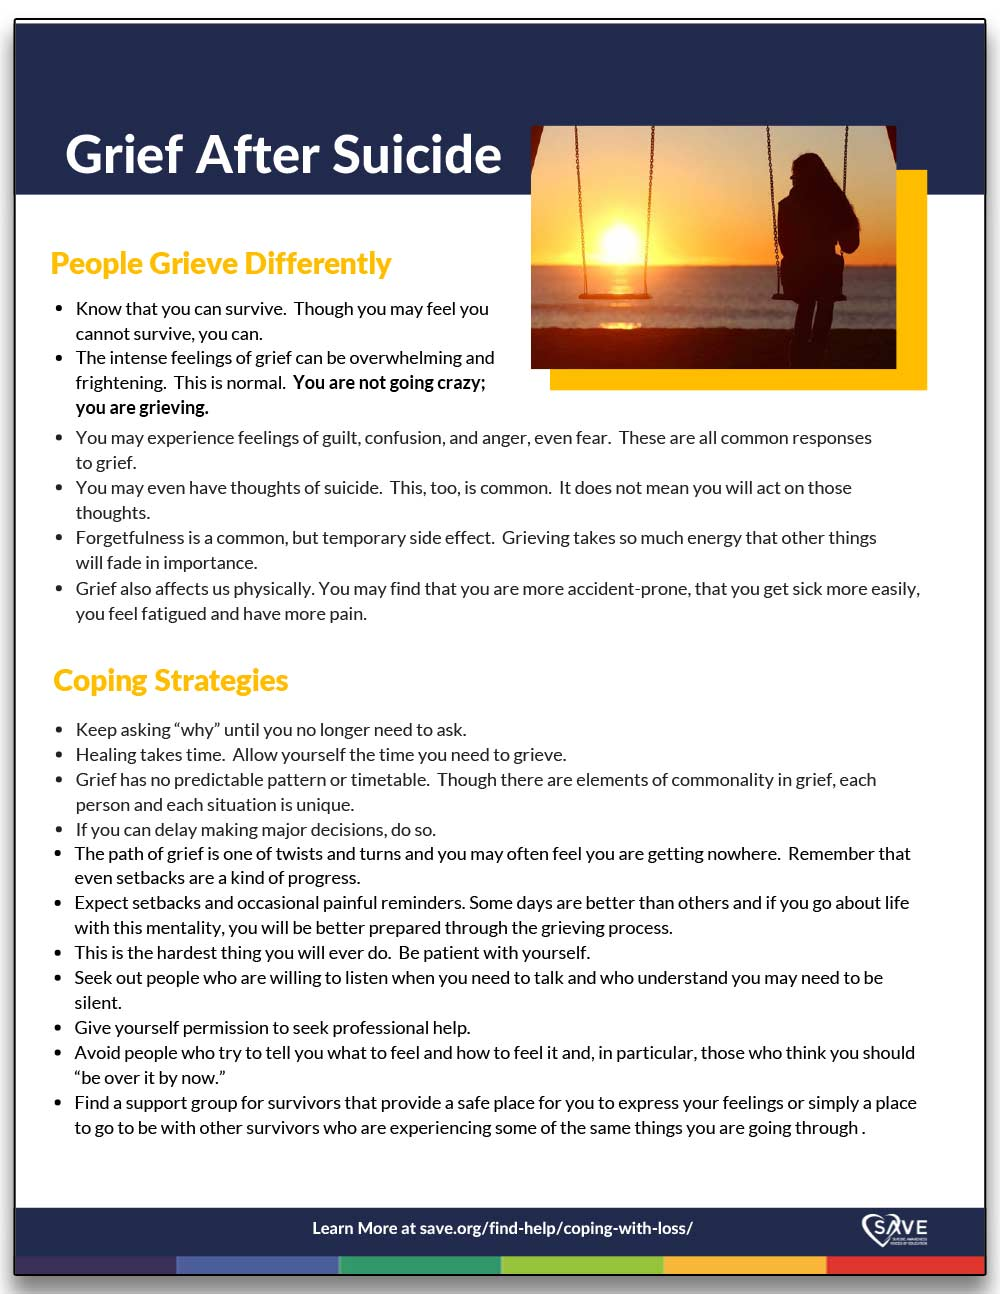 information sheet about grief after suicide